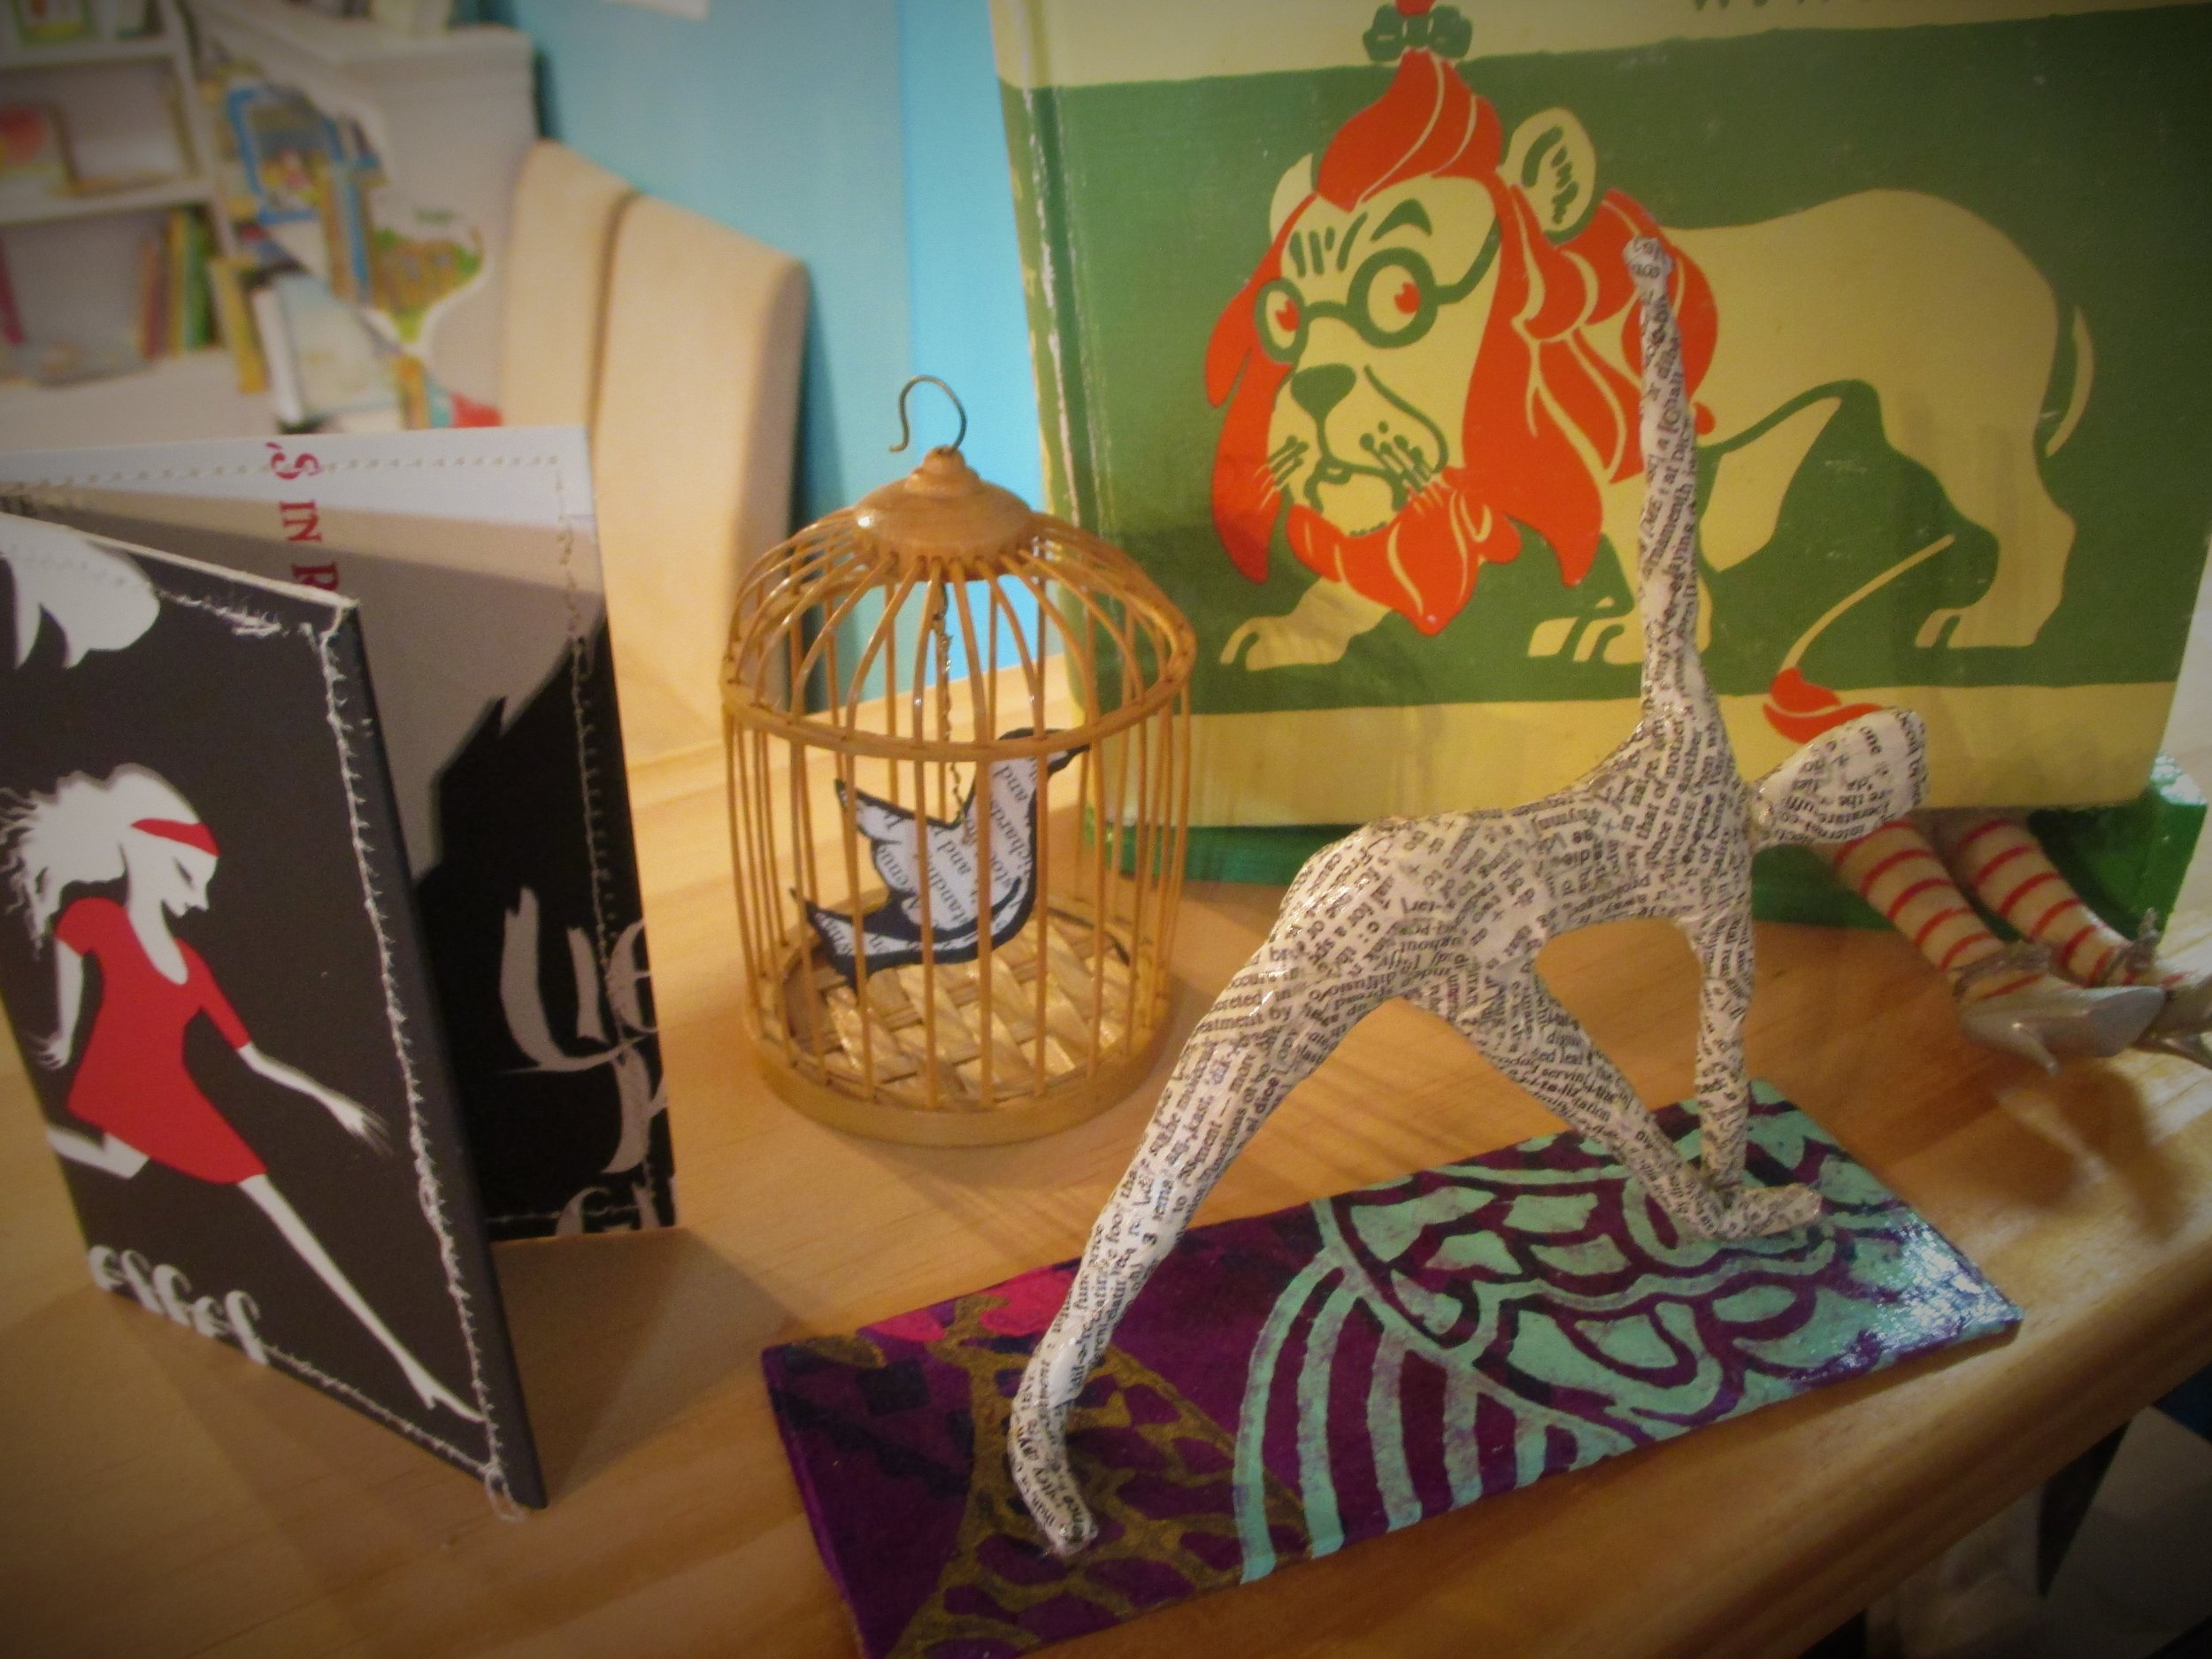 Odds n Ends - Book art, ornaments, and walletsGreeting CardsPuzzles and GamesJewelryRefreshments